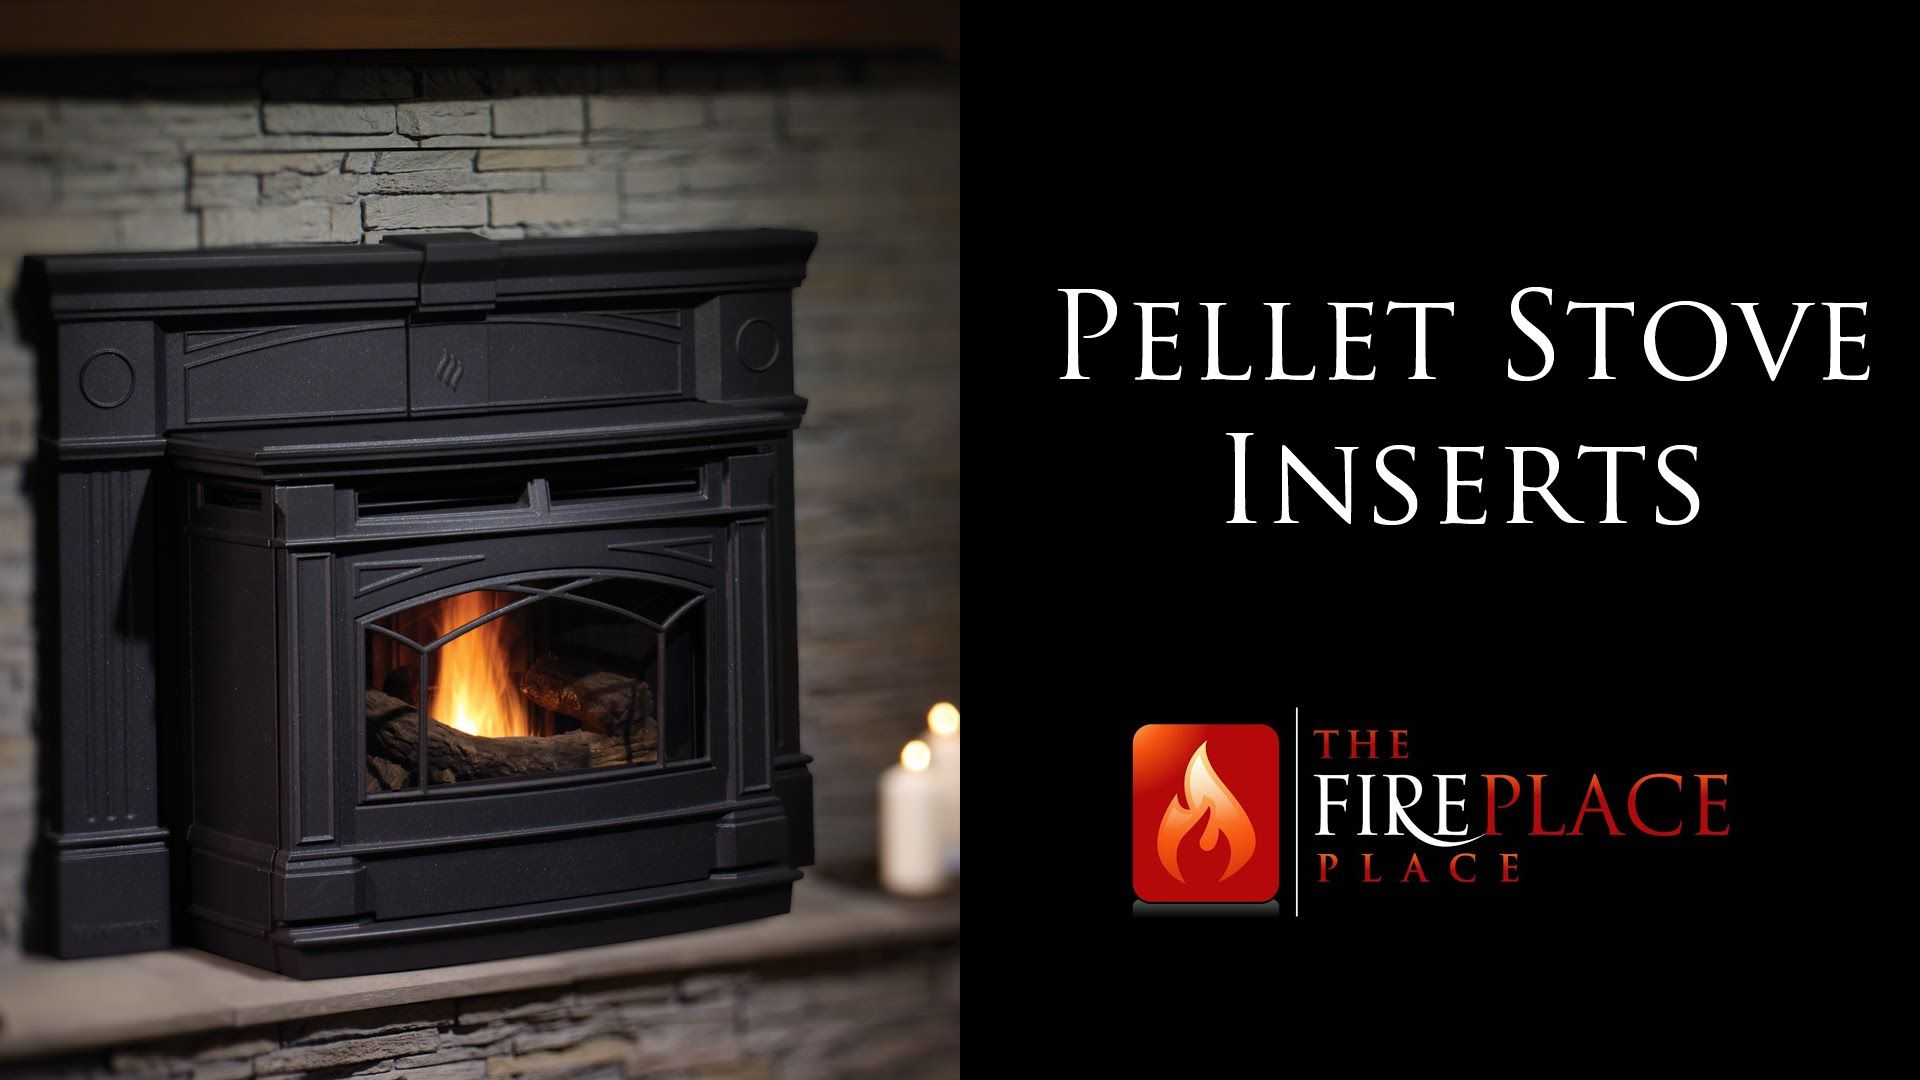 Pellet Stove Inserts Atlanta The Fireplace Place Pellet Stove